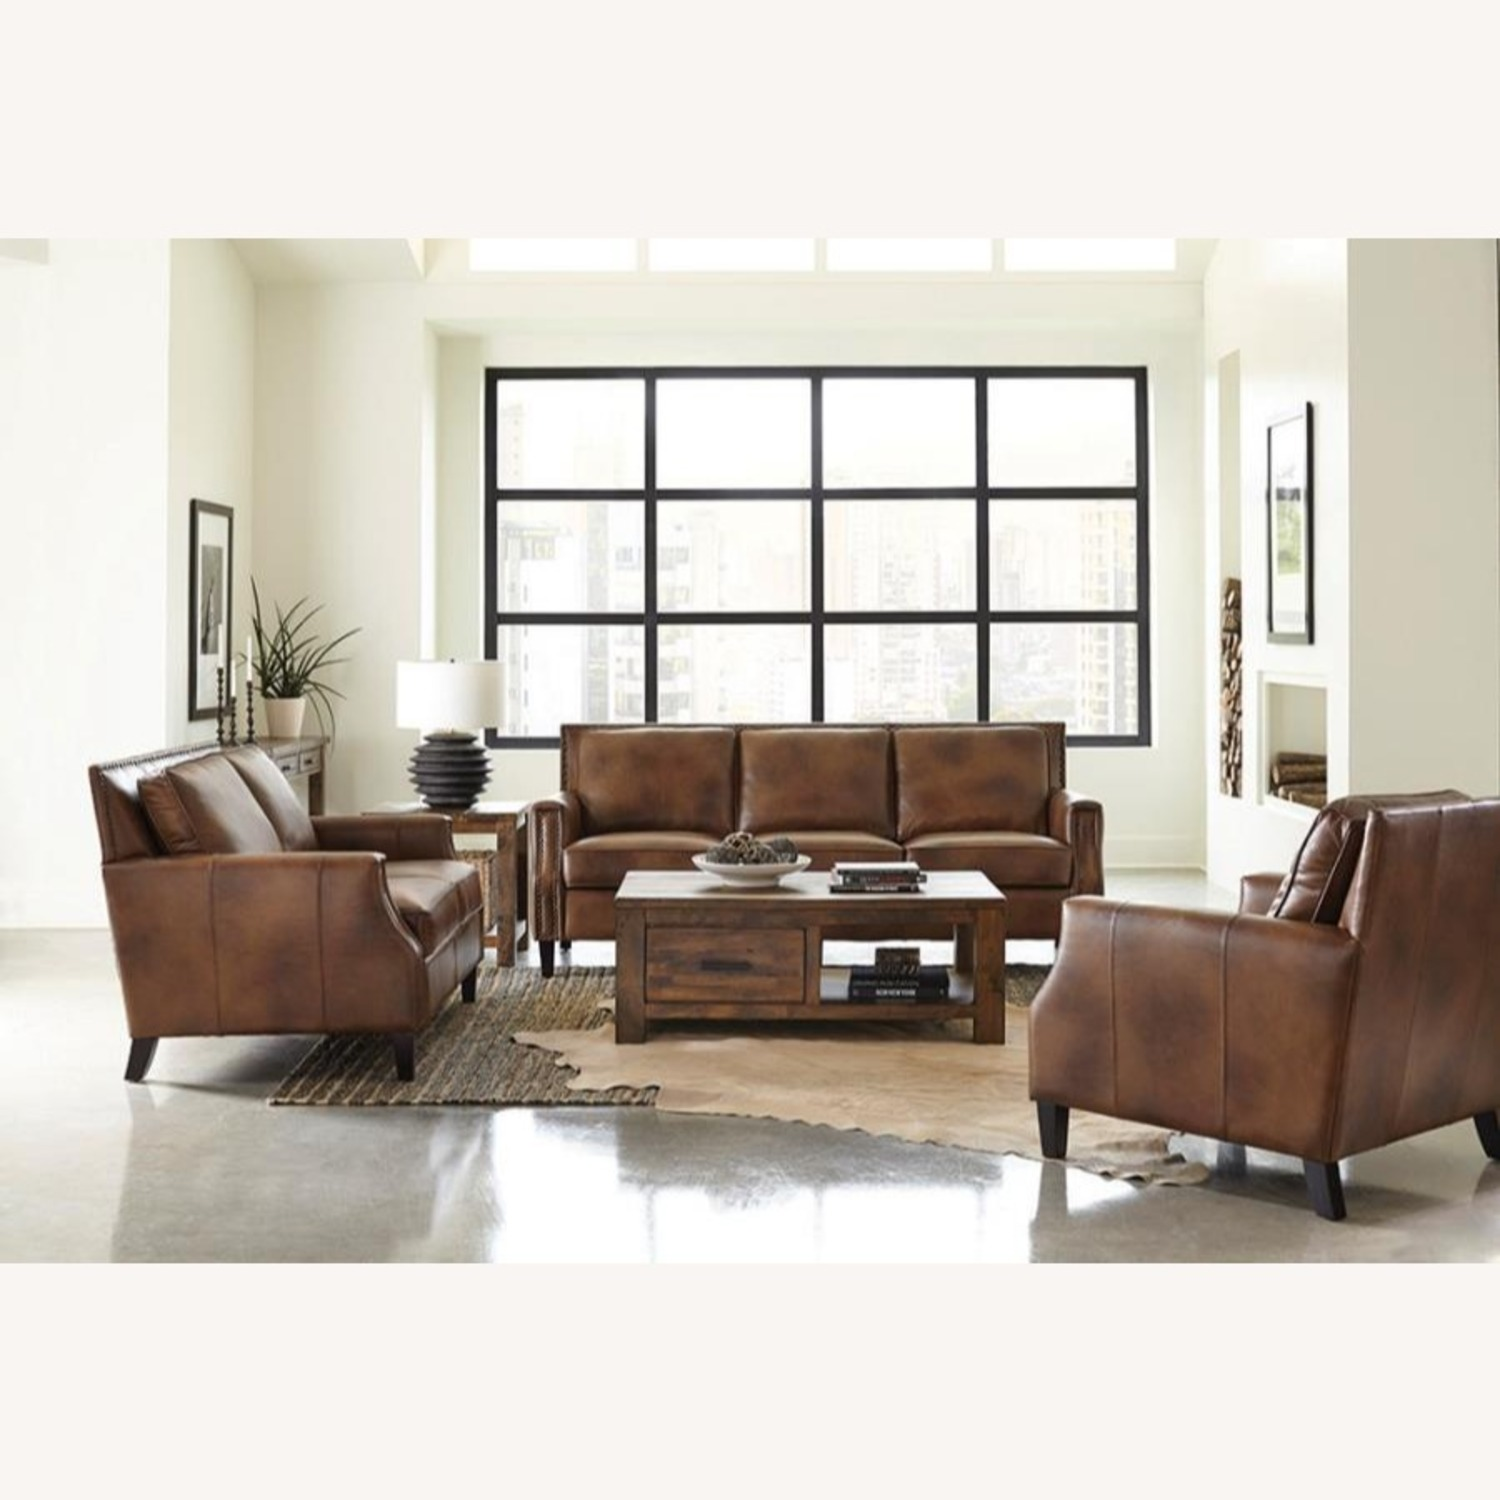 Chair In Brown Sugar Leather Upholstery - image-2